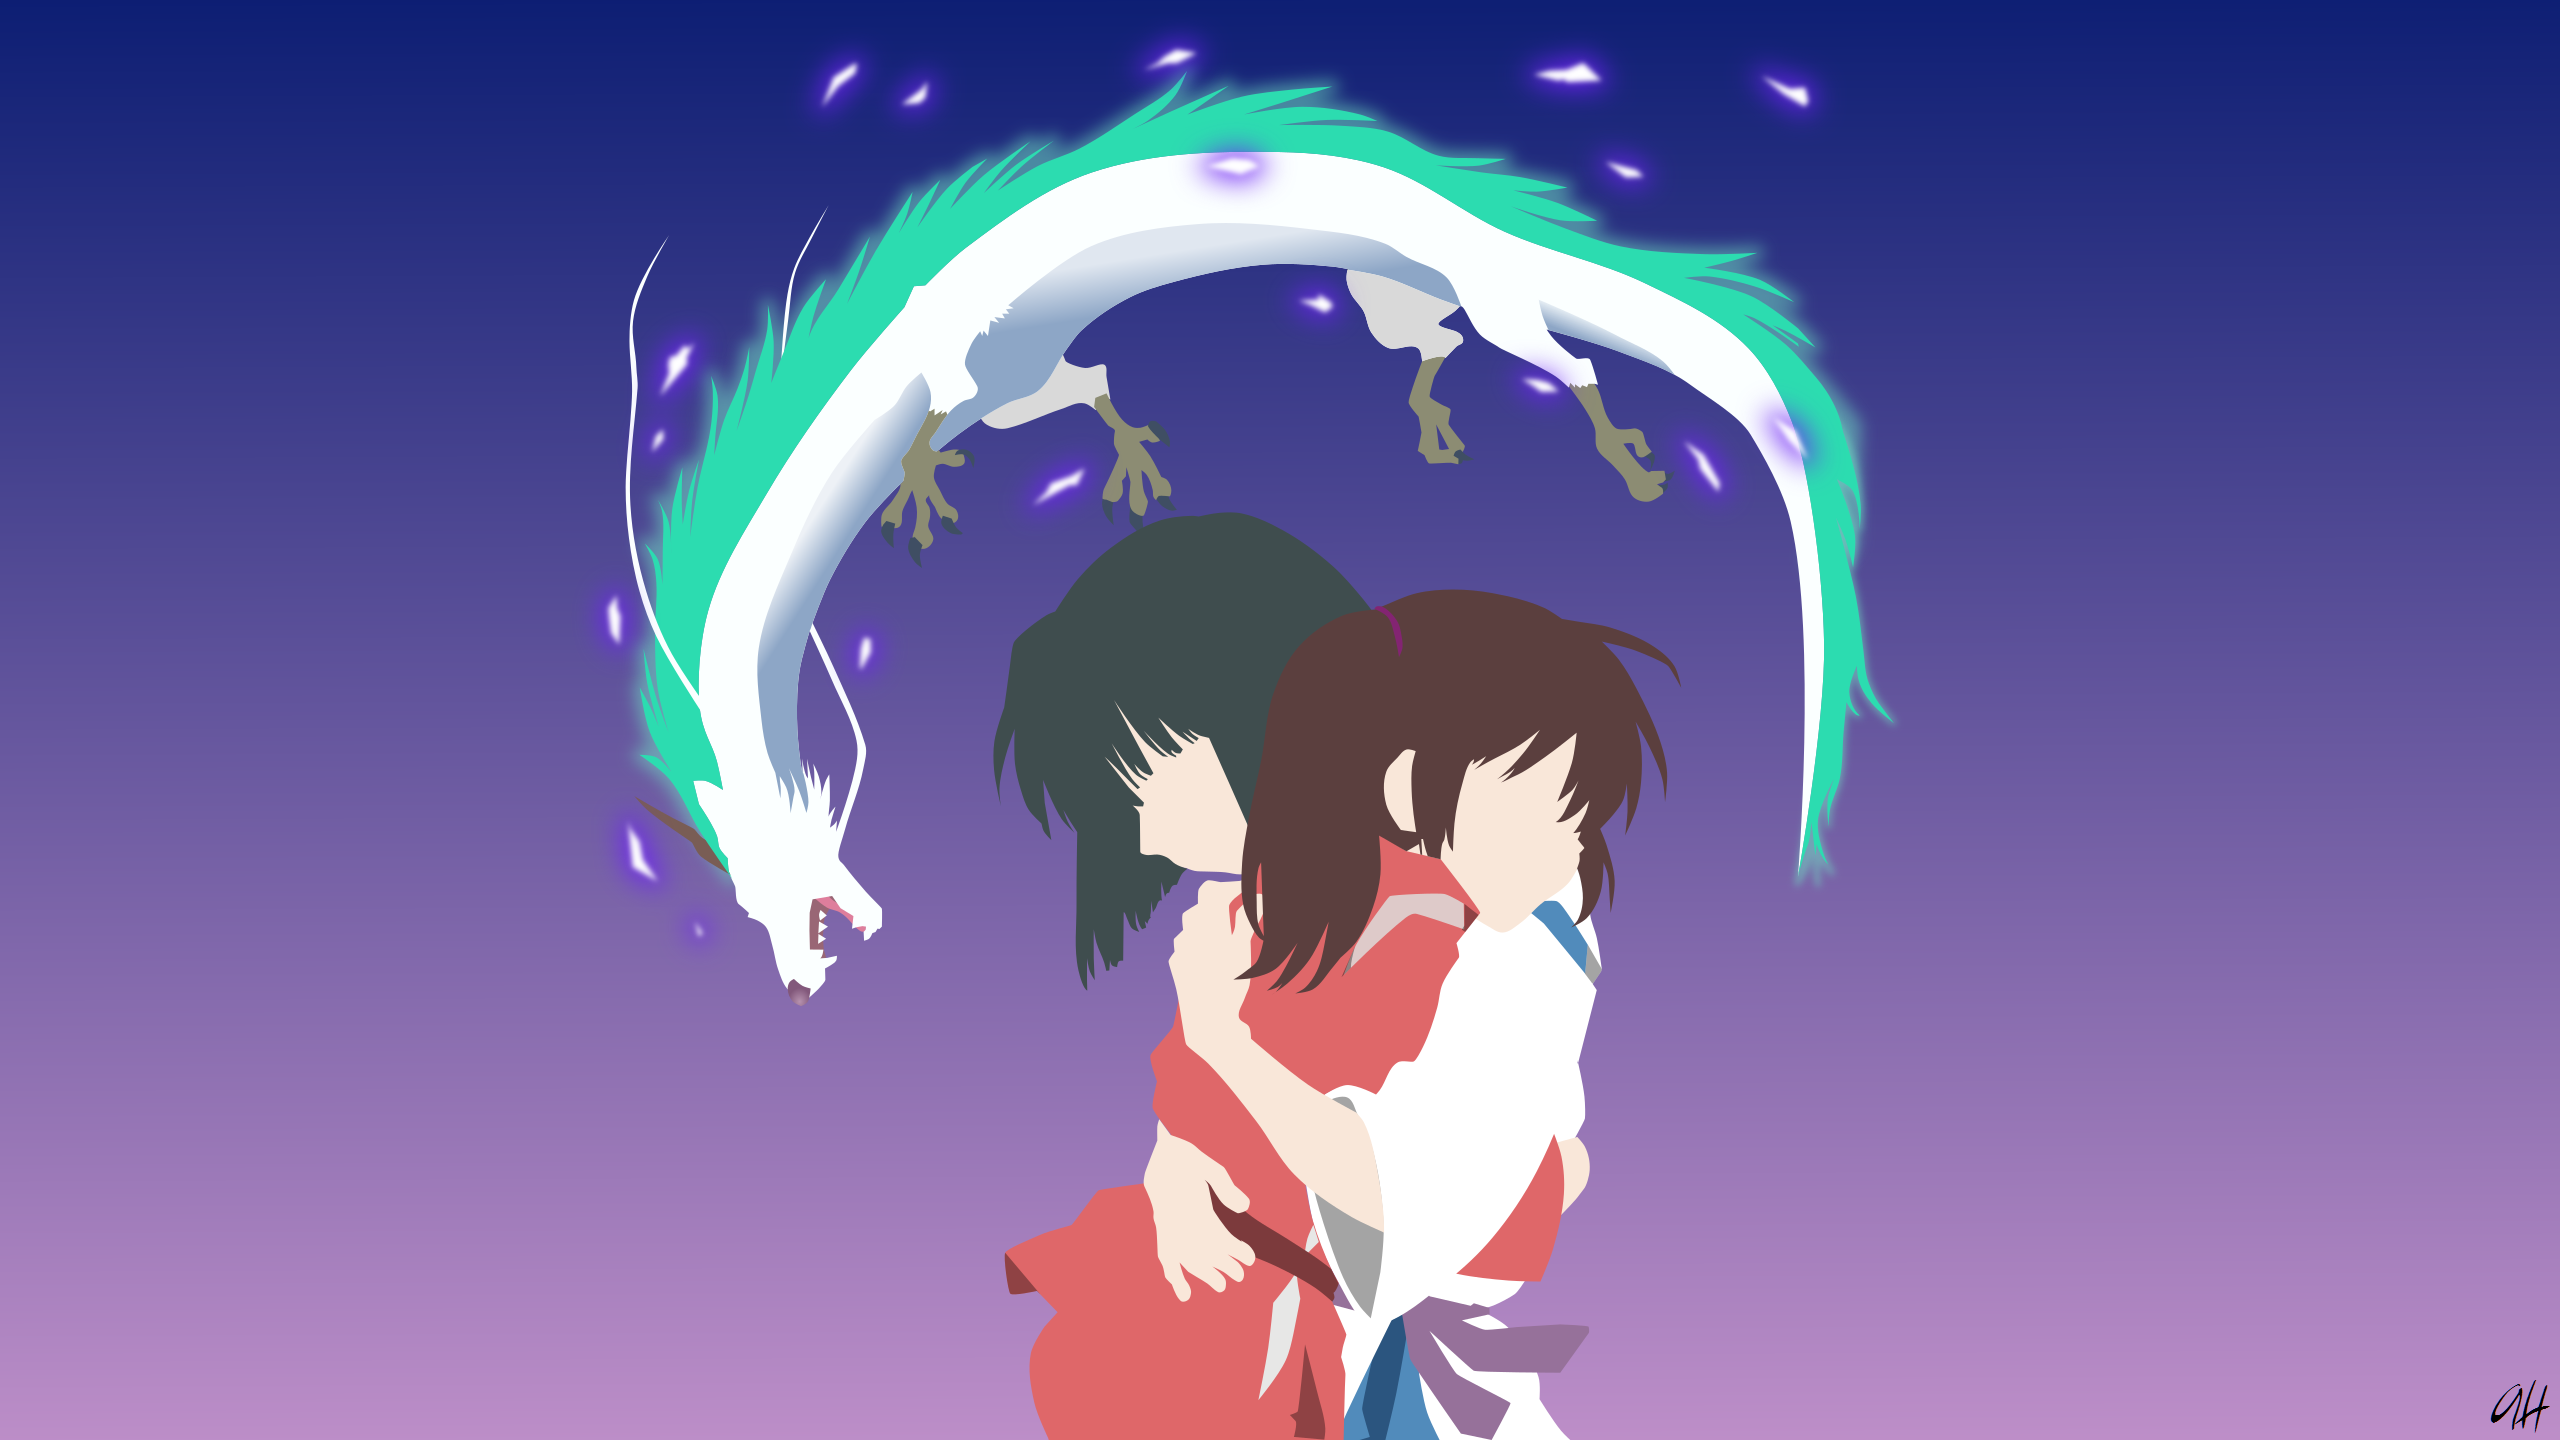 Spirited Away Minimalist Full HD Wallpaper And Background